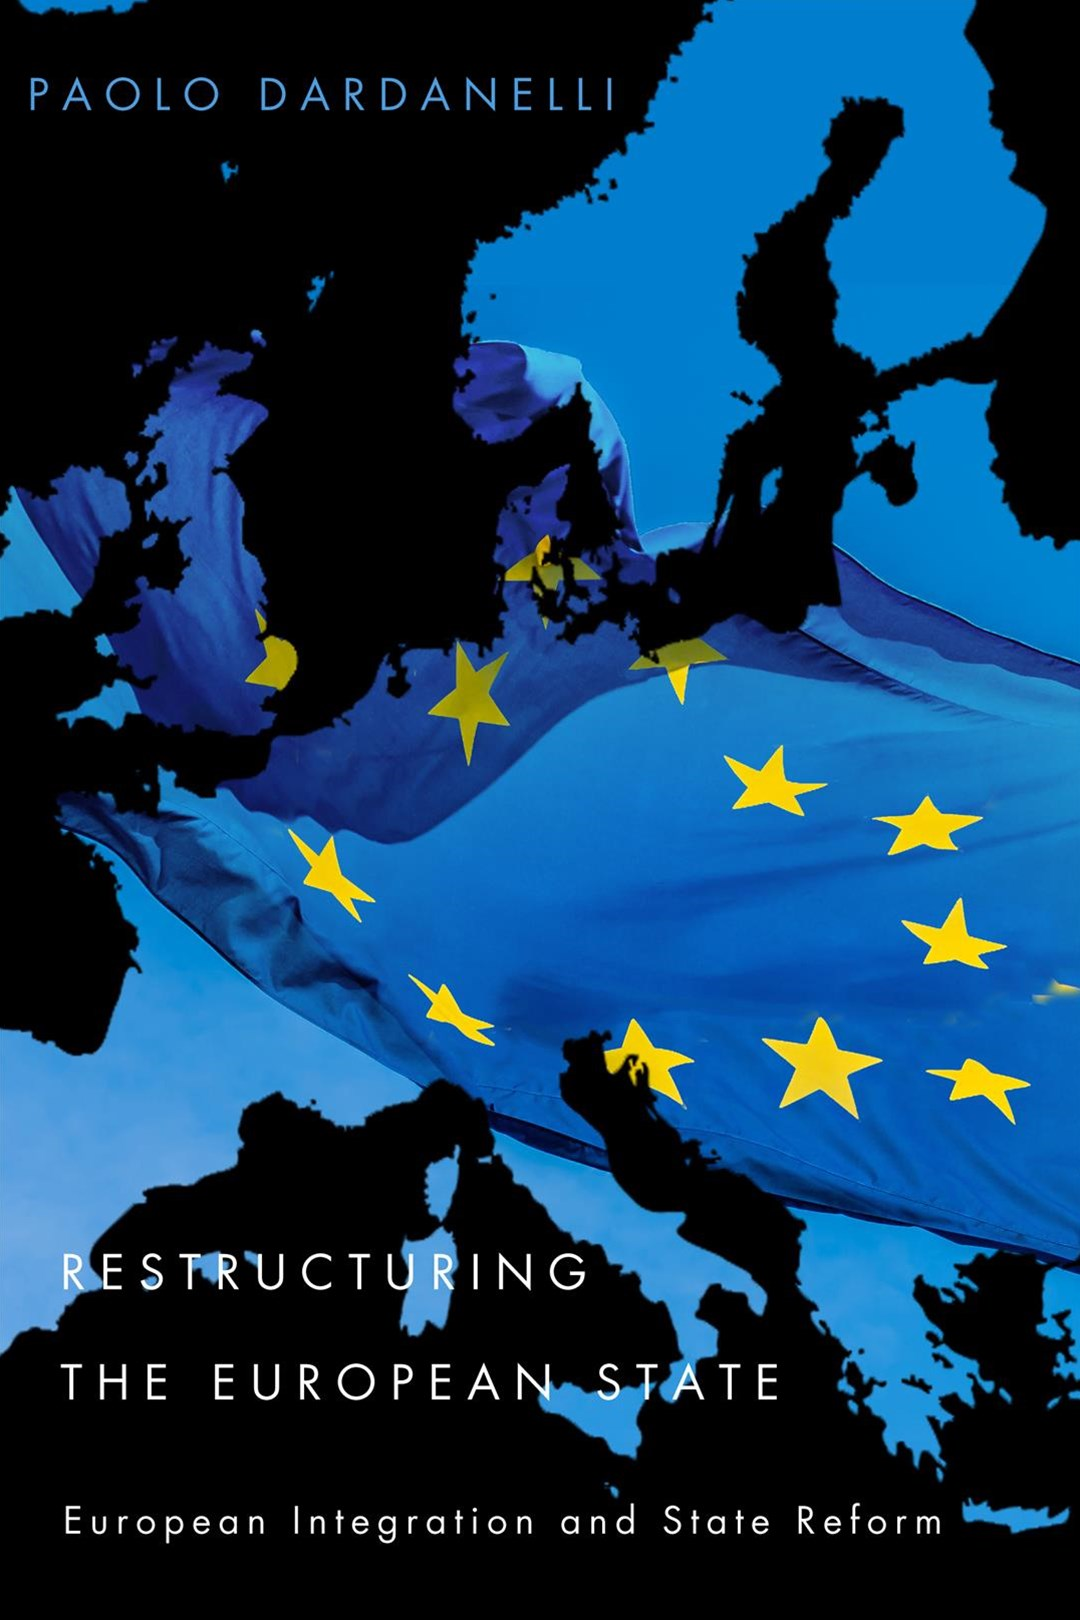 Restructuring the European State European Integration and State Restructuring 1950-2015